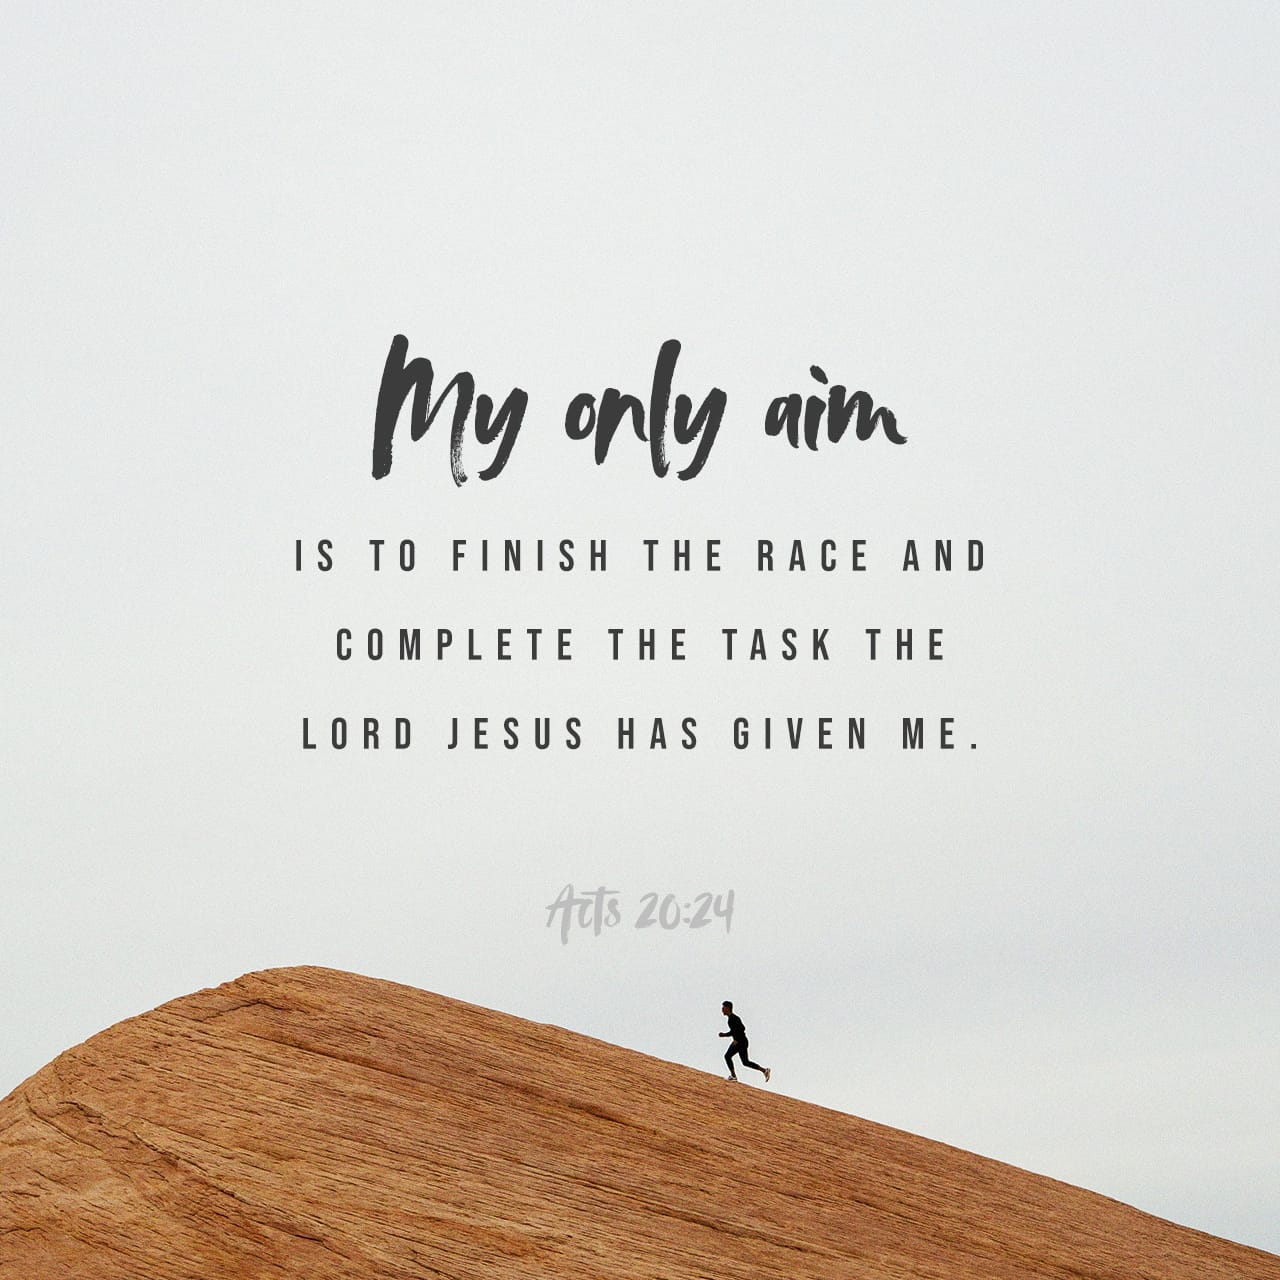 Acts 20:24 However, I consider my life worth nothing to me; my only aim is  to finish the race and complete the task the Lord Jesus has given me—the  task of testifying